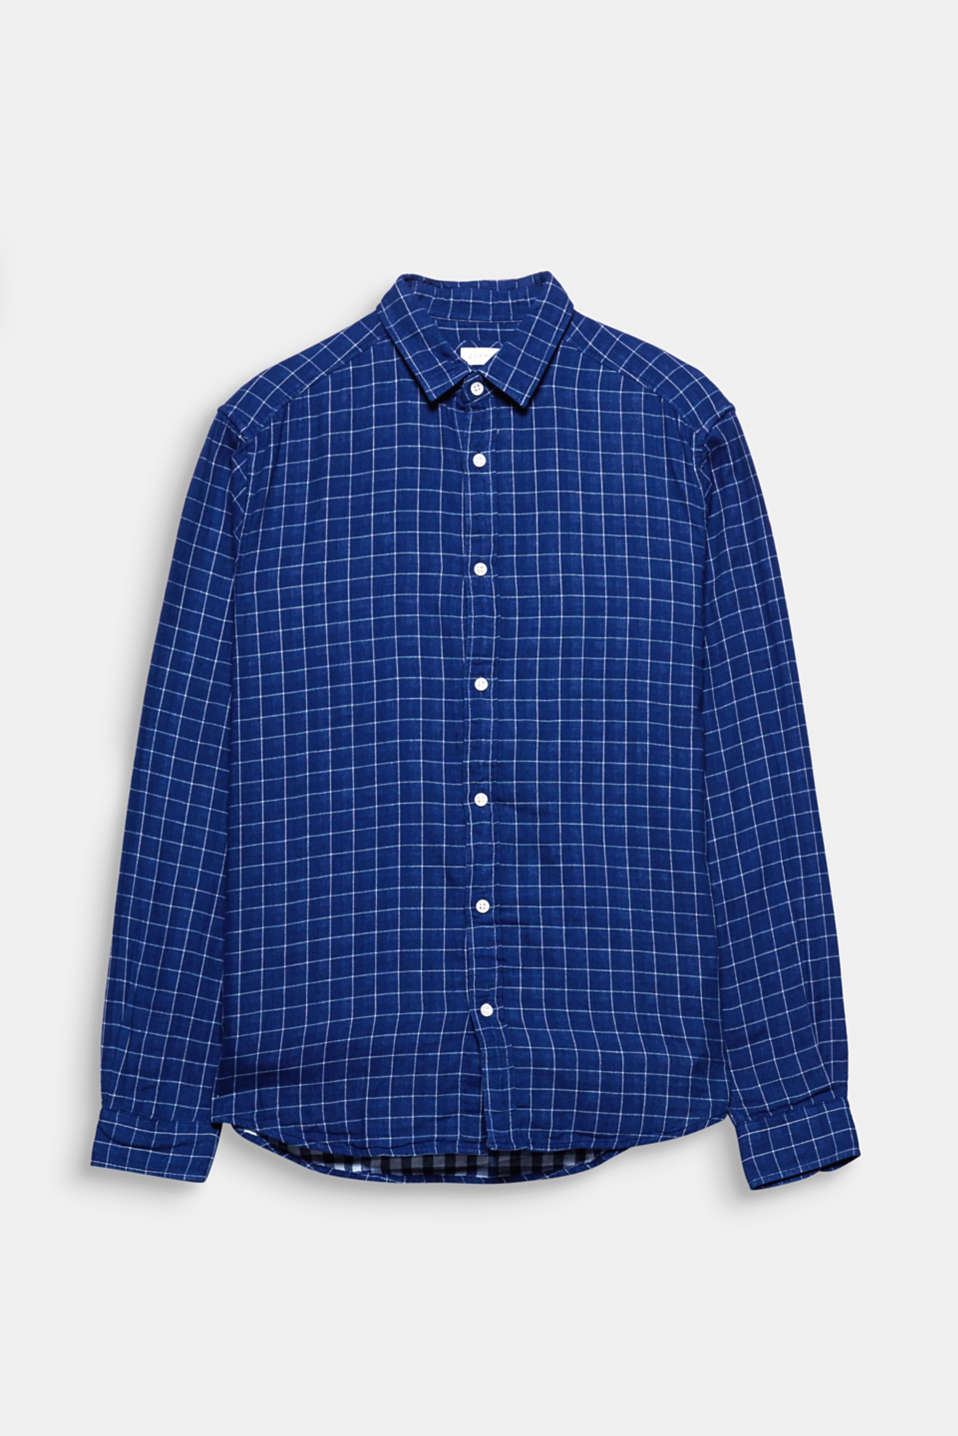 A casual style for your outfit! The distinctive check pattern gives this shirt urban appeal.